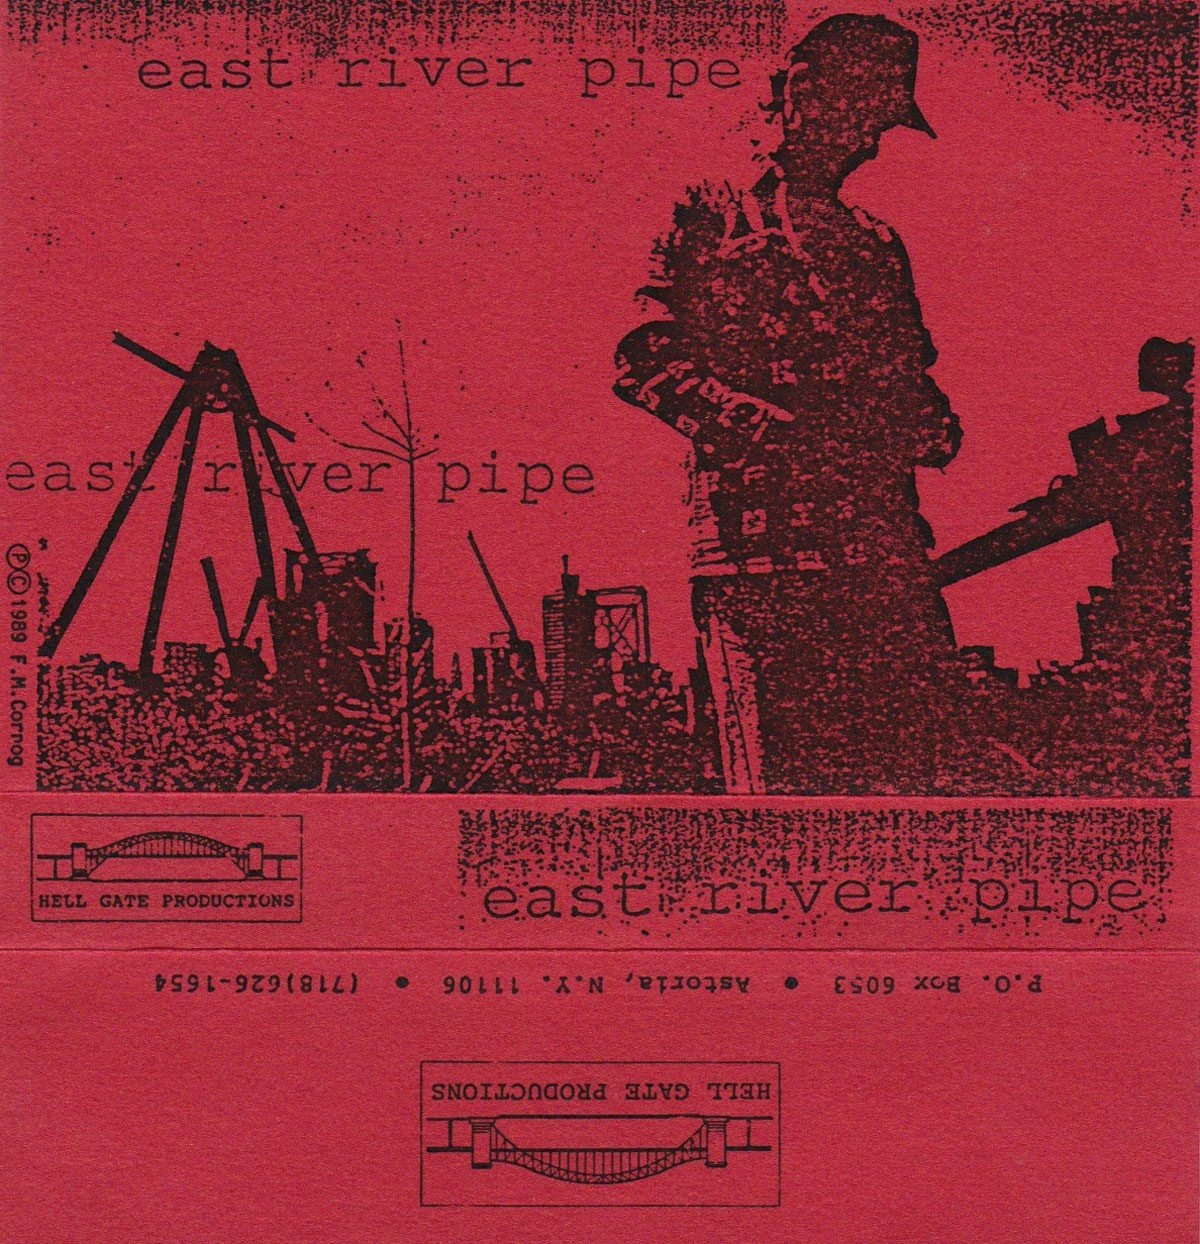 East River Pipe: 3 songs, 1989